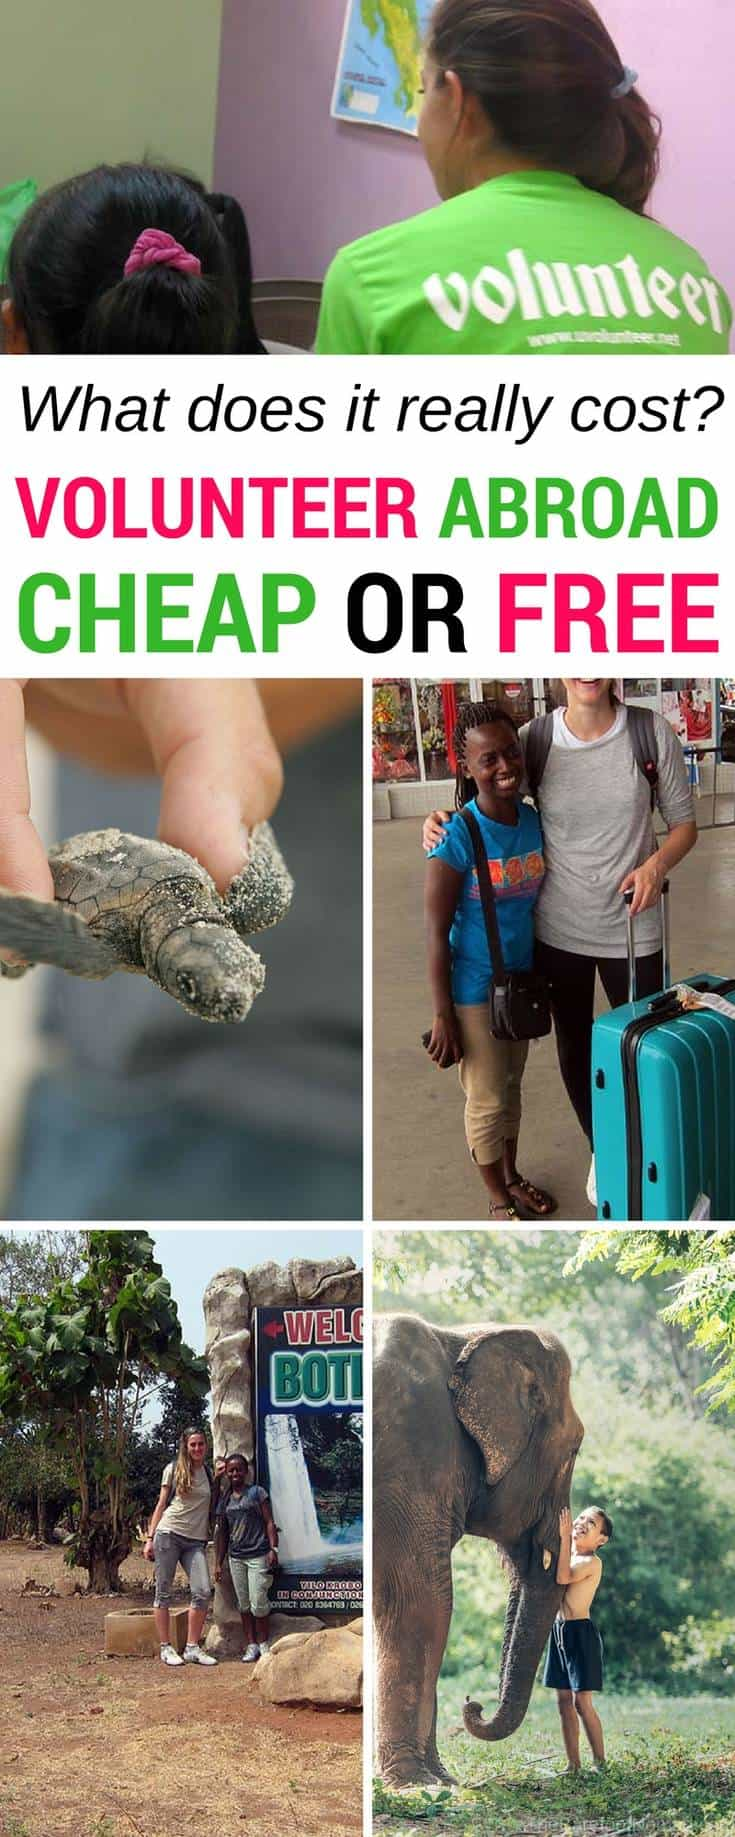 Do you want to volunteer abroad and travel, but you're worried about the cost? It is possible to volunteer for free or cheap, but our expert shares the real costs of volunteer work programs, including money to budget for airfare, meals, volunteer, fees and more.